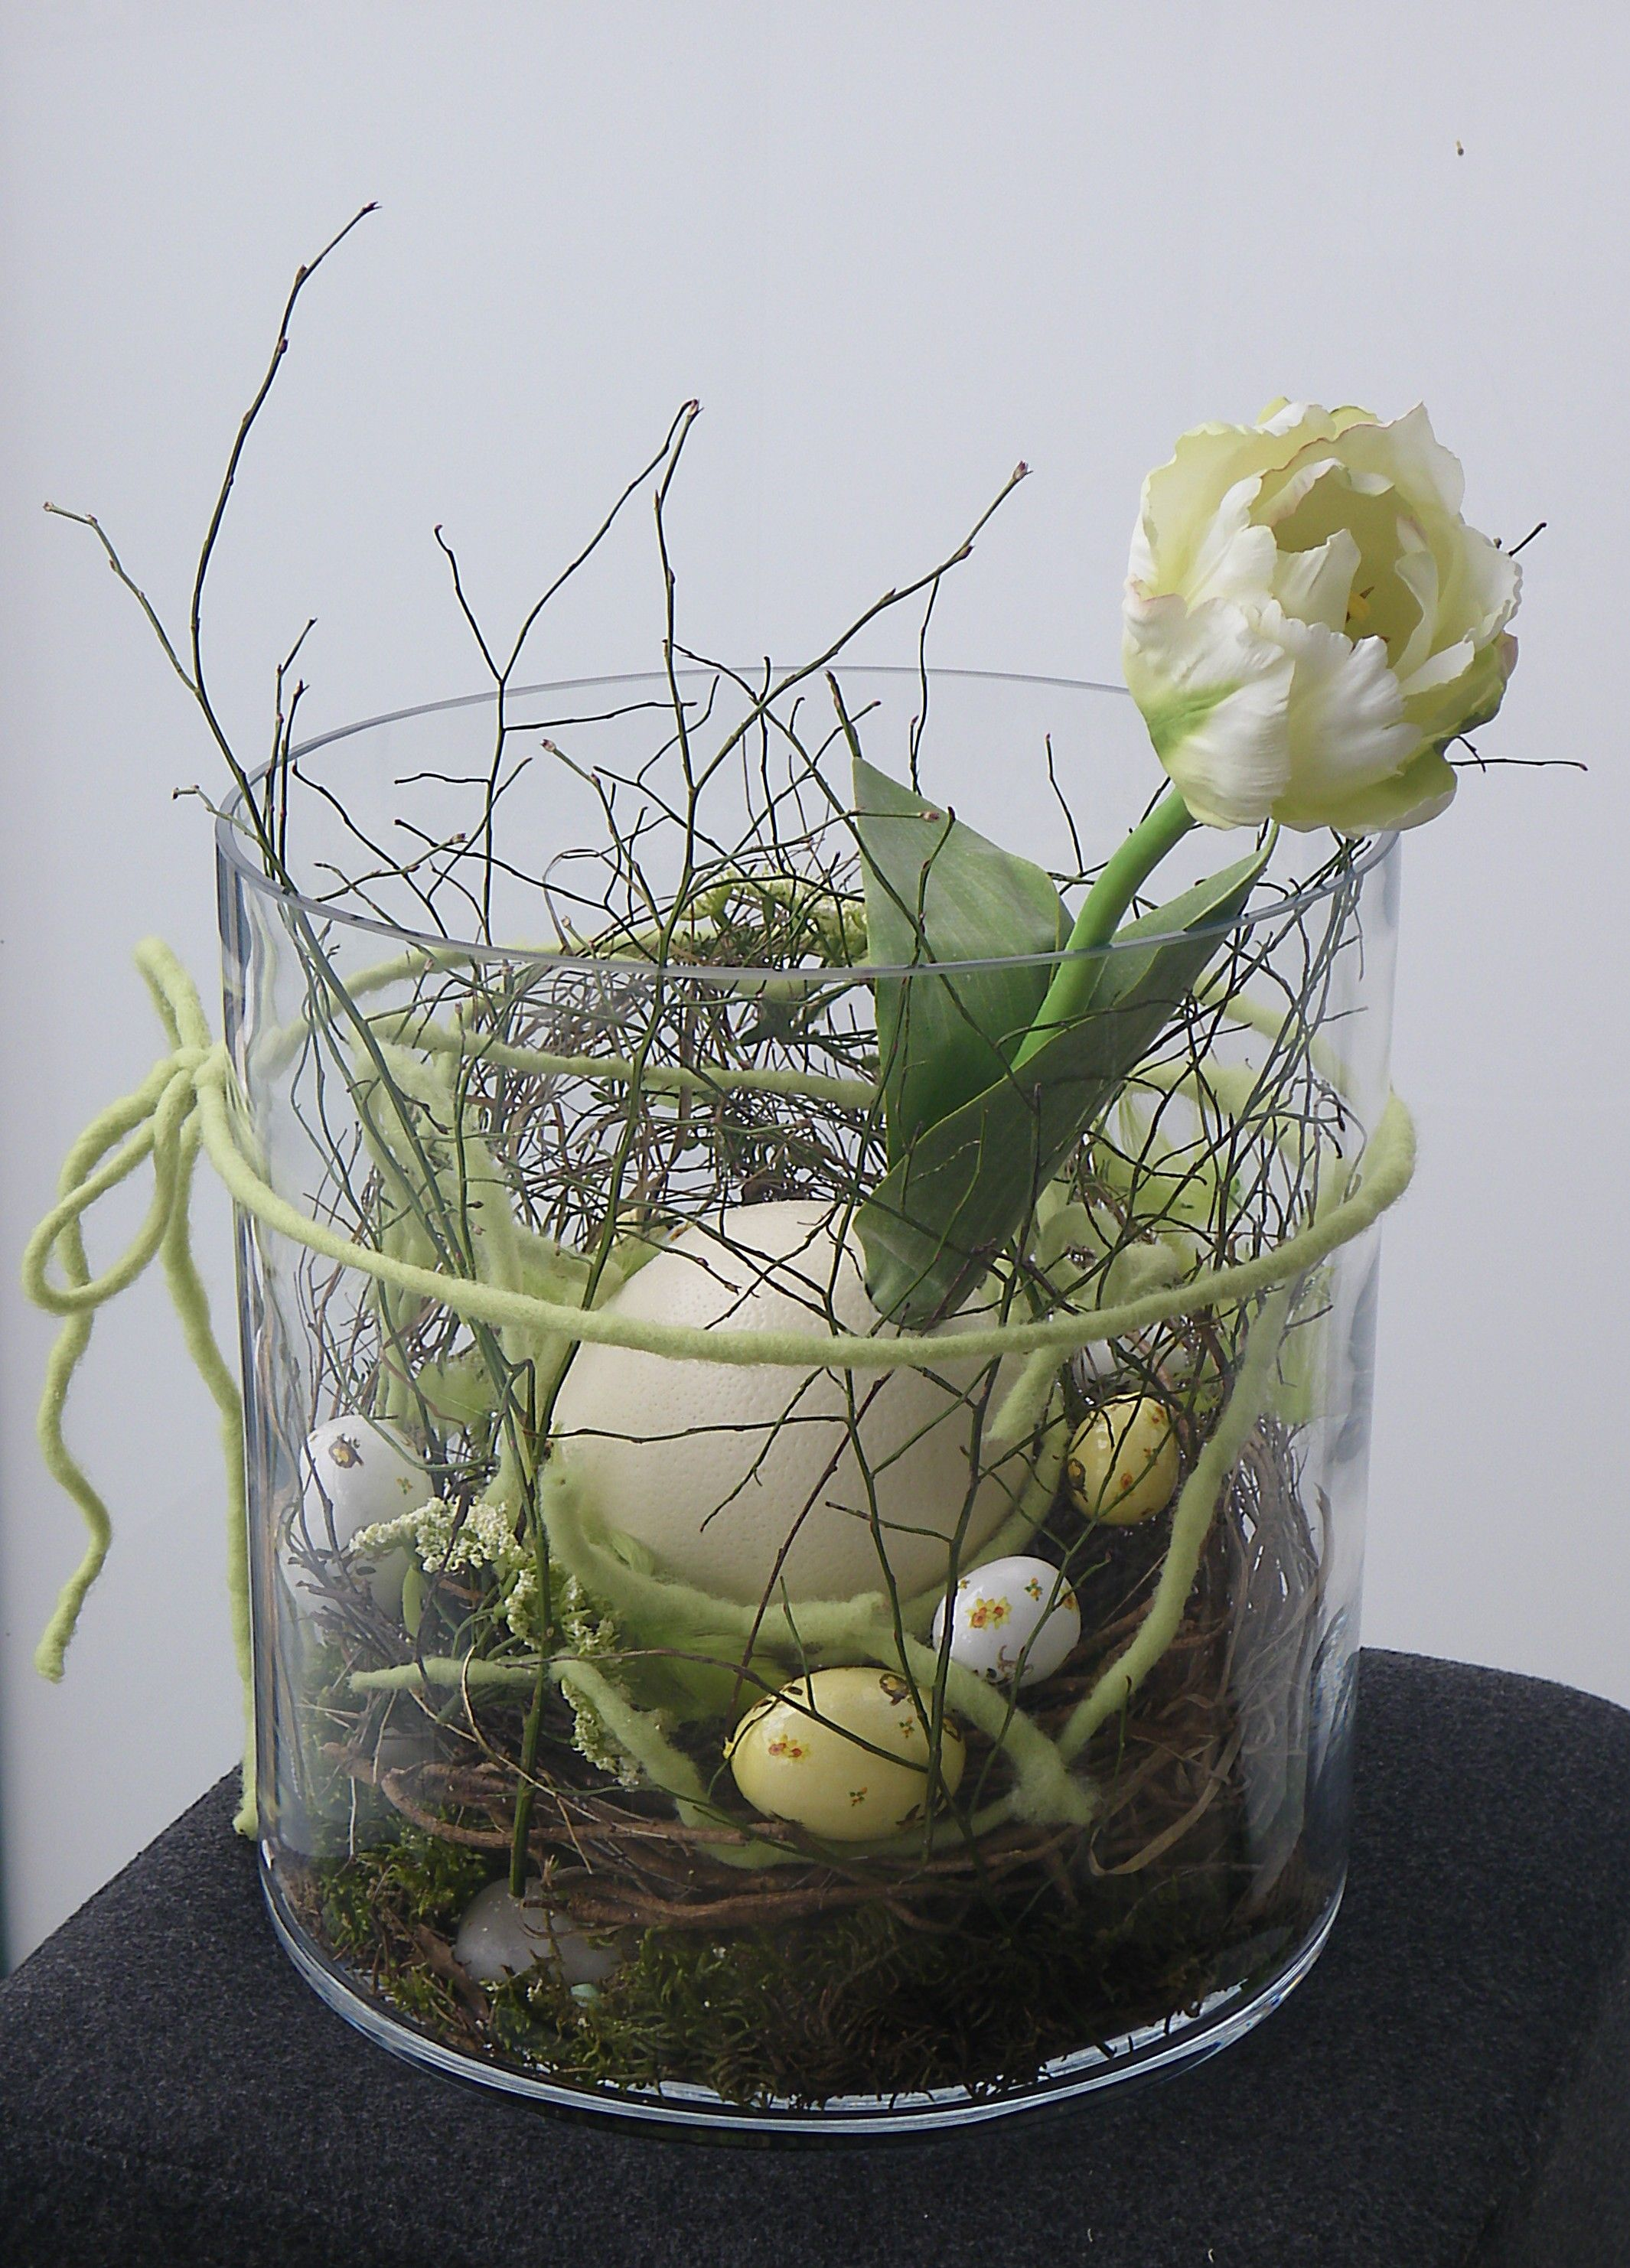 50 Beautiful Ideas For The Spirit Of Easter And Spring Into Your